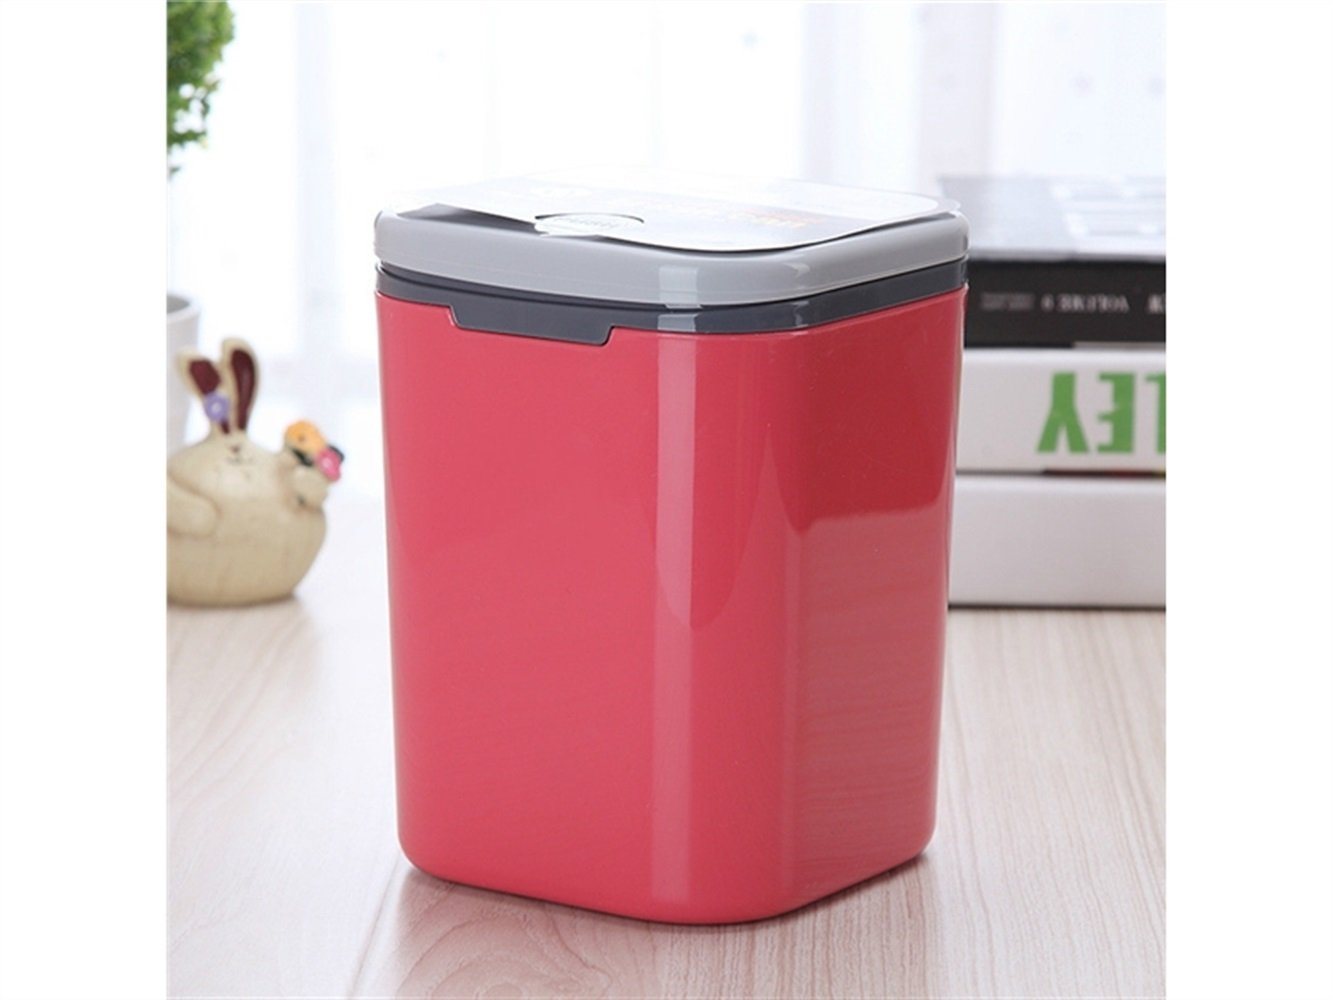 JwlqAy Livingroom Trash Storage Flip Cover Rubbish Waste Can Lid (Pink)